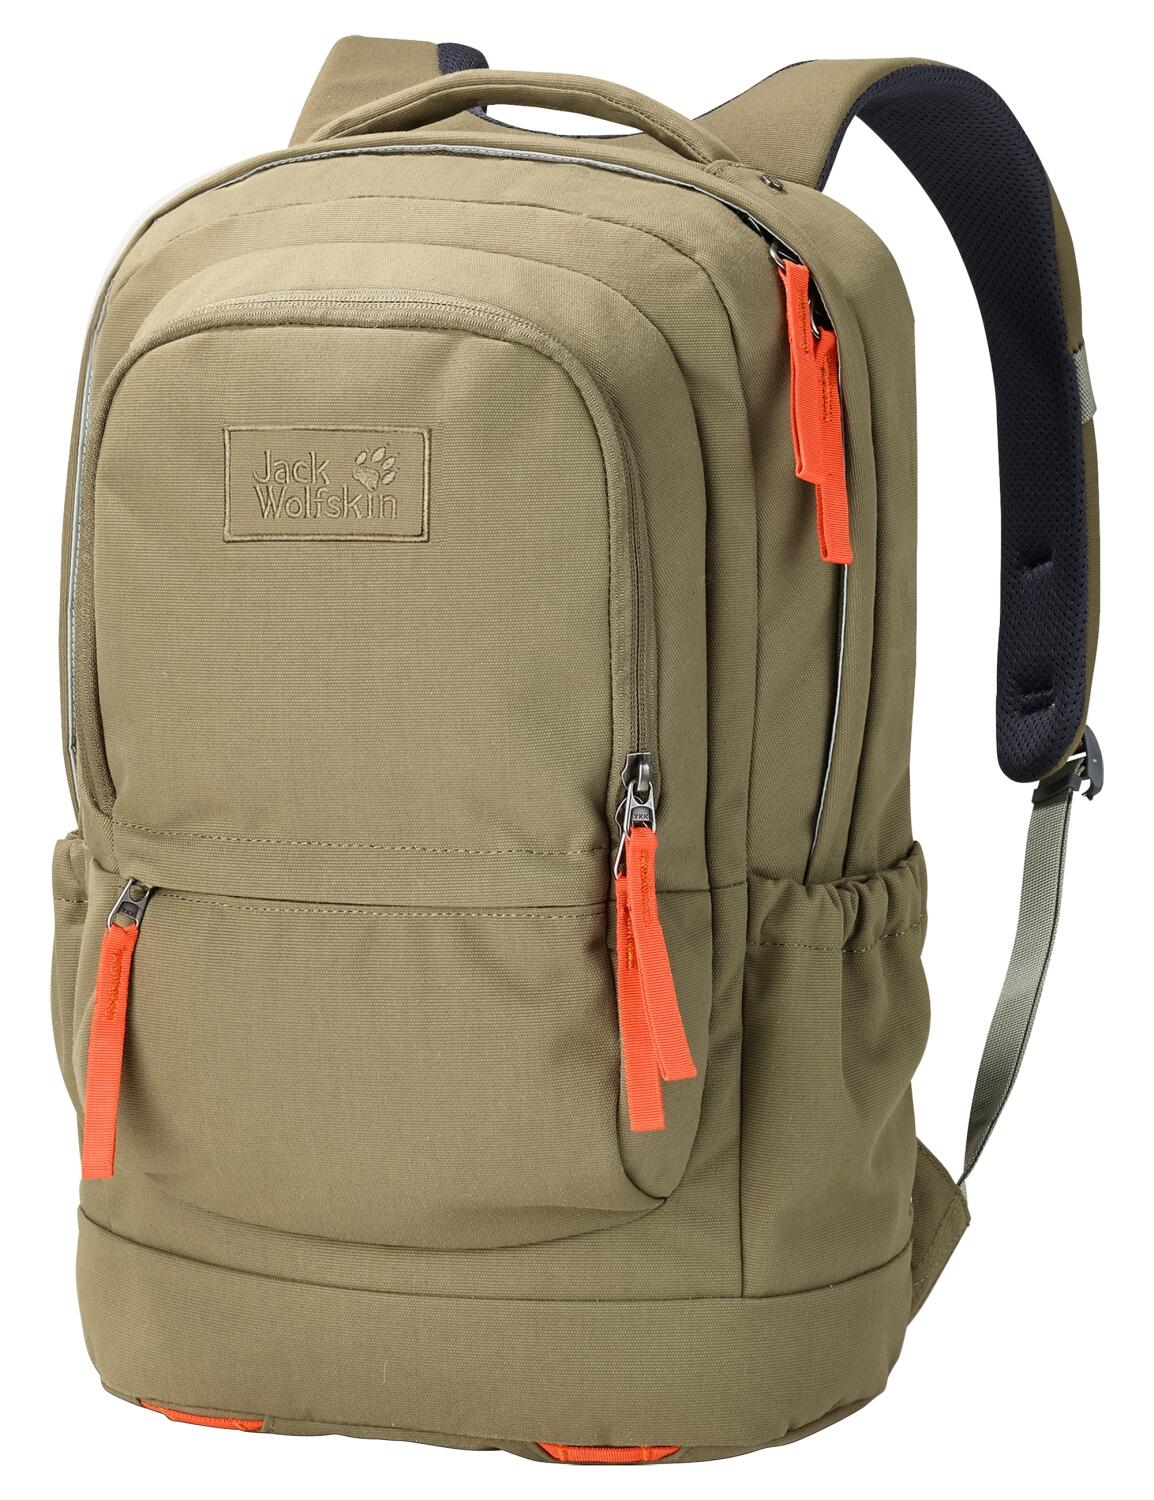 Jack Wolfskin Road Kid 20 Laptoprucksack